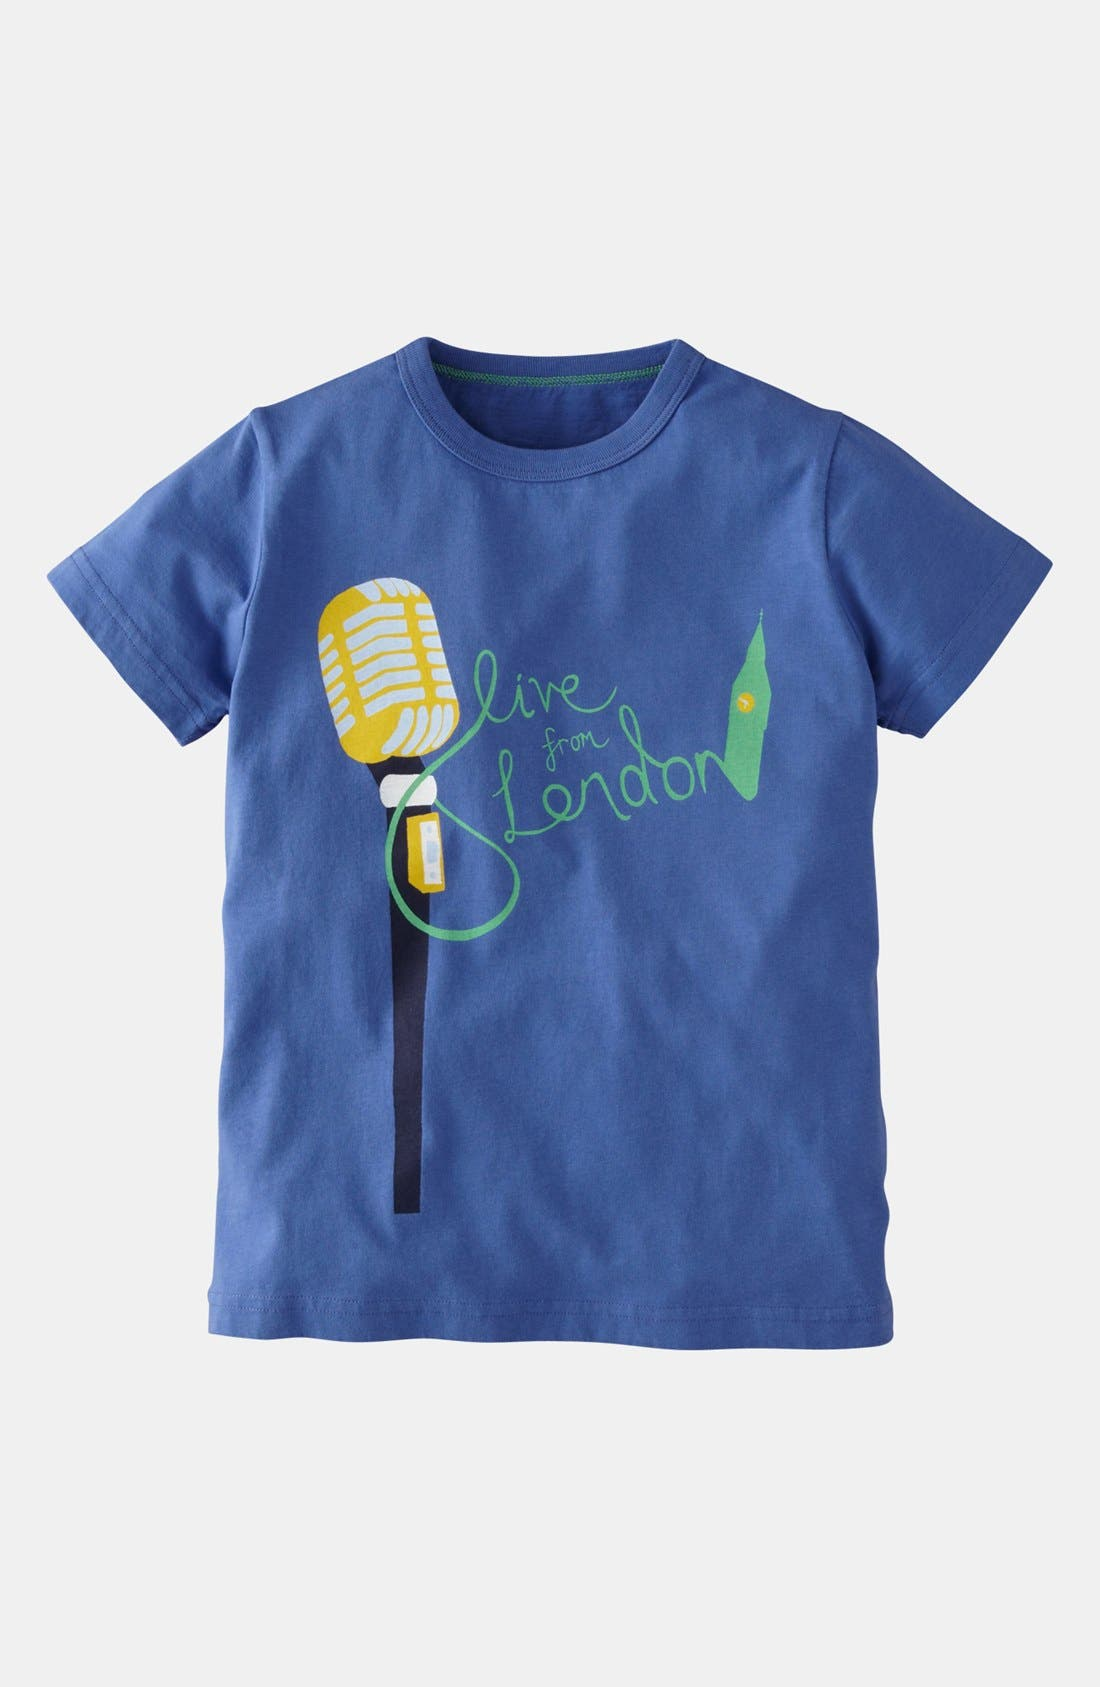 Alternate Image 1 Selected - Mini Boden 'Icon' T-Shirt (Toddler, Little Boys & Big Boys)